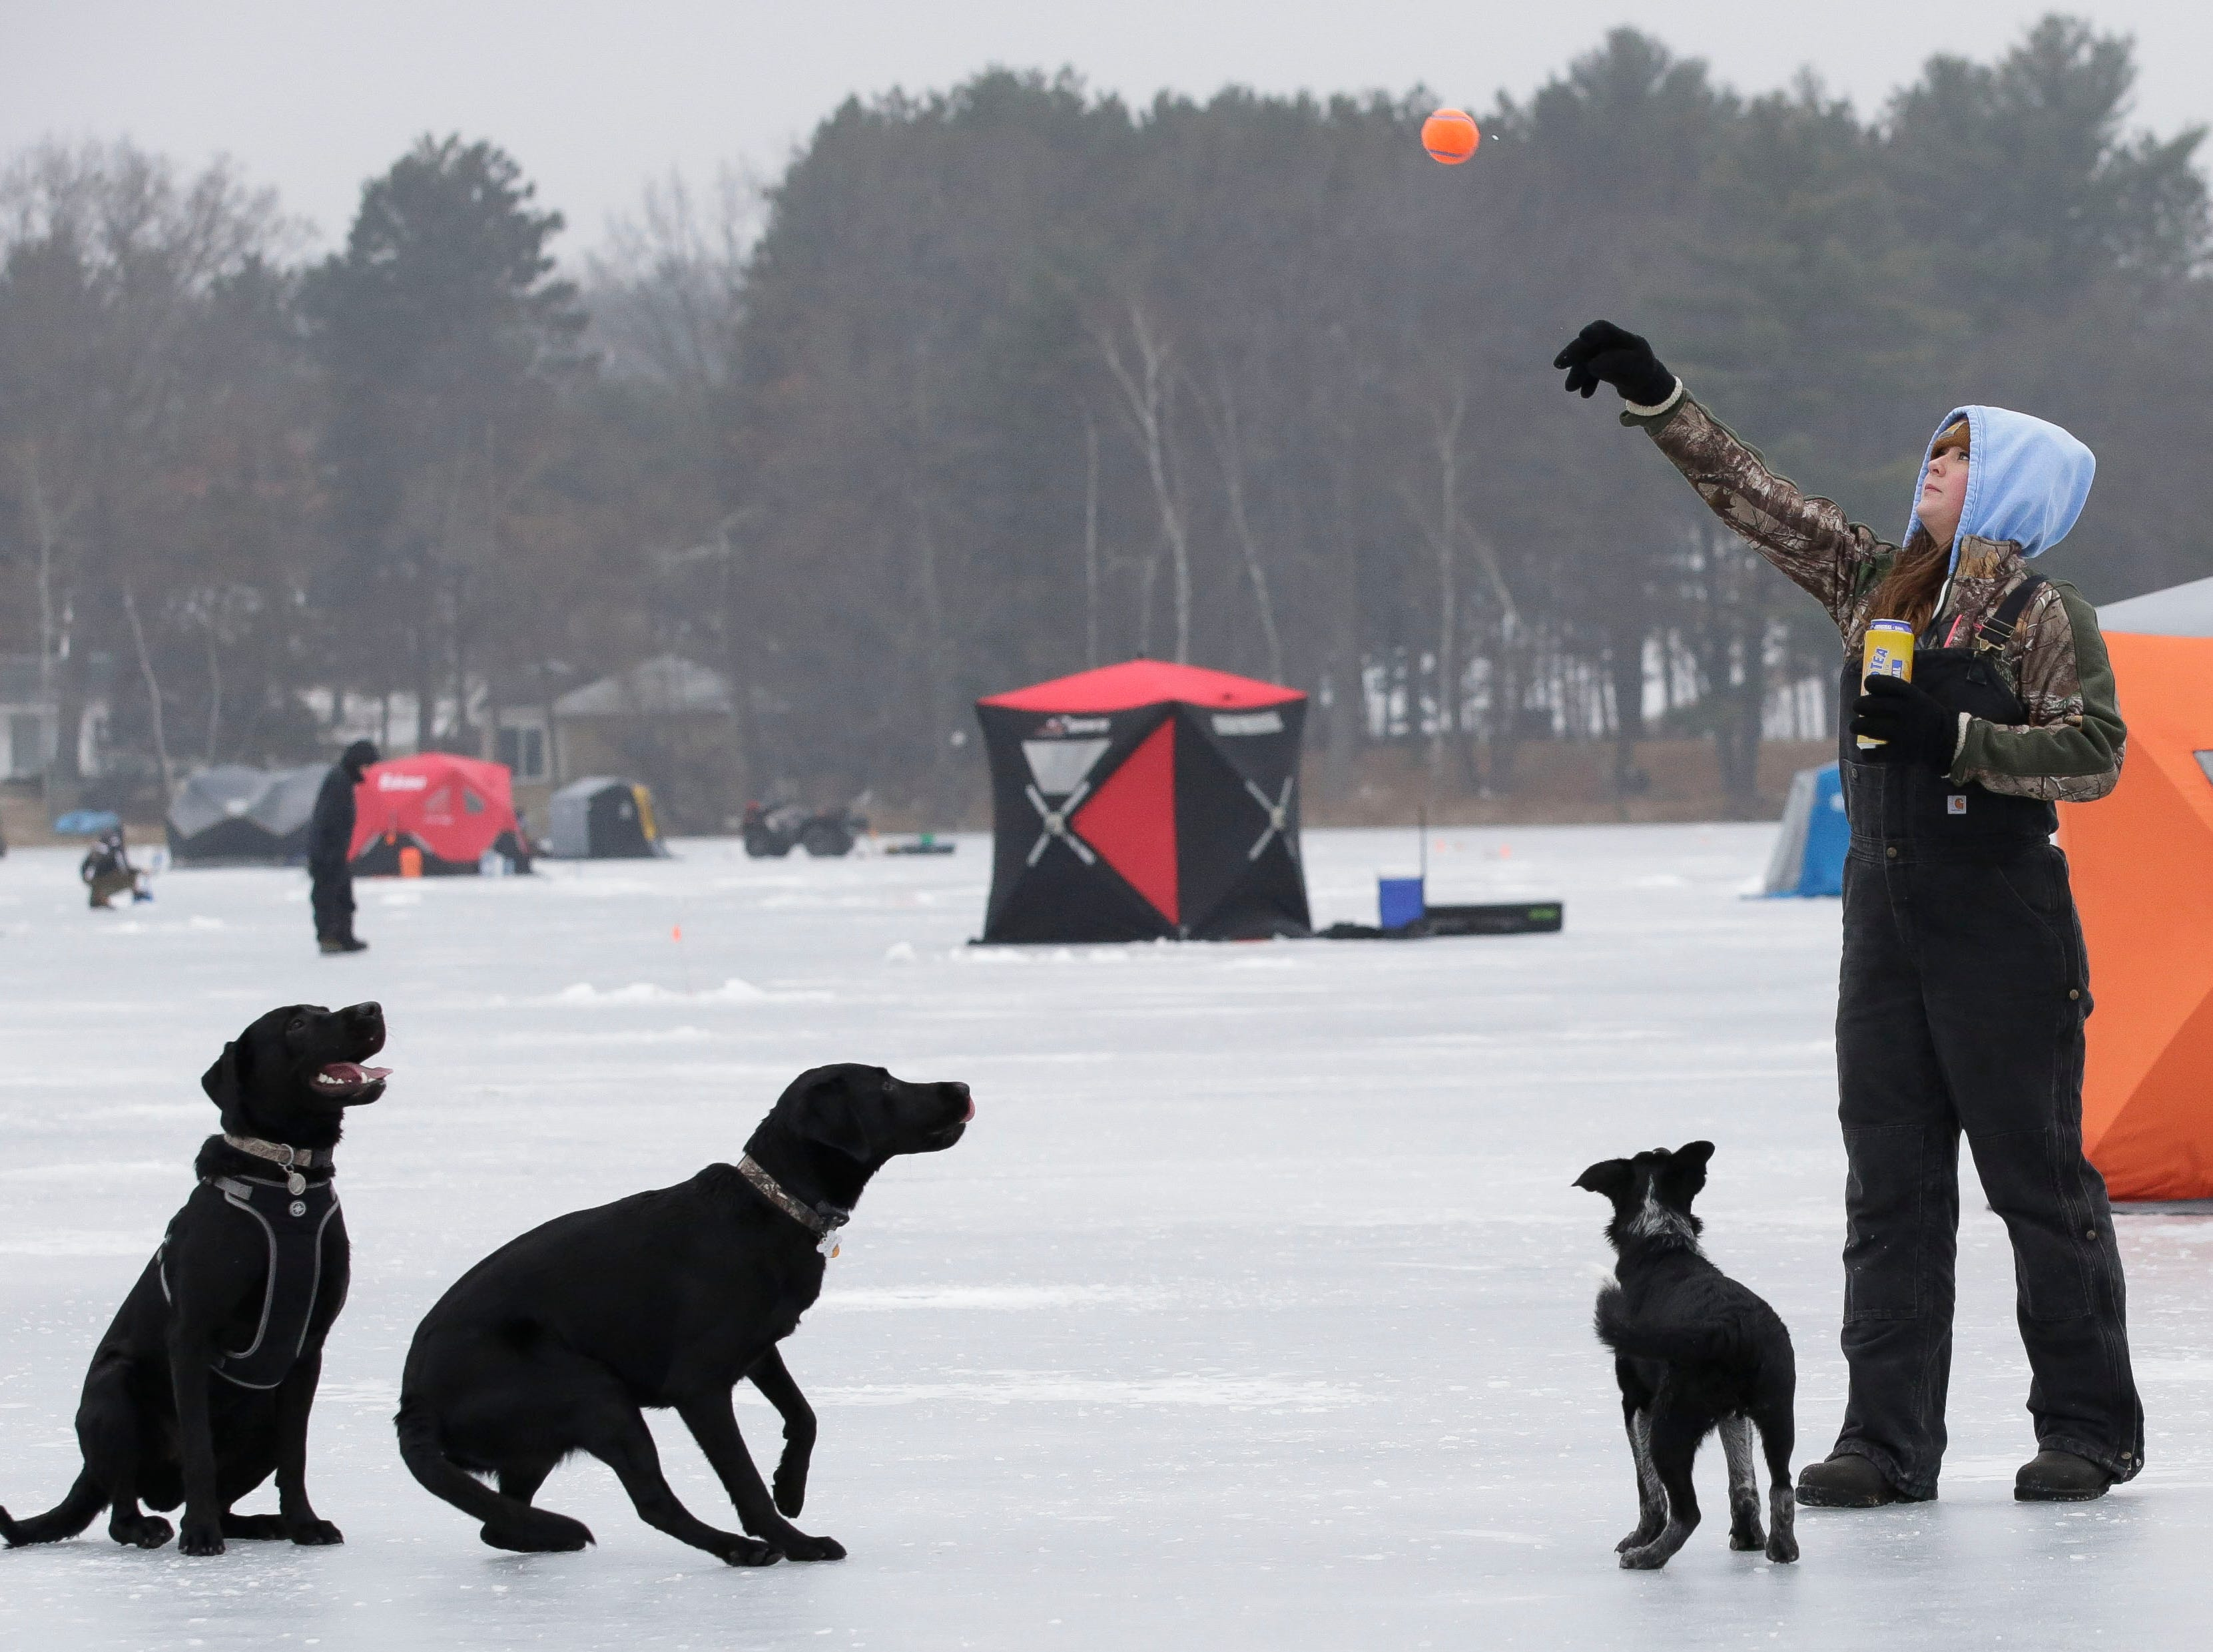 Beka Oliver tosses a ball for her dogs to chase on Saturday, January 12, 2019, during the Rosholt Blizzard Busters Fisheree at Lake Helen outside Rosholt, Wis.Tork Mason/USA TODAY NETWORK-Wisconsin